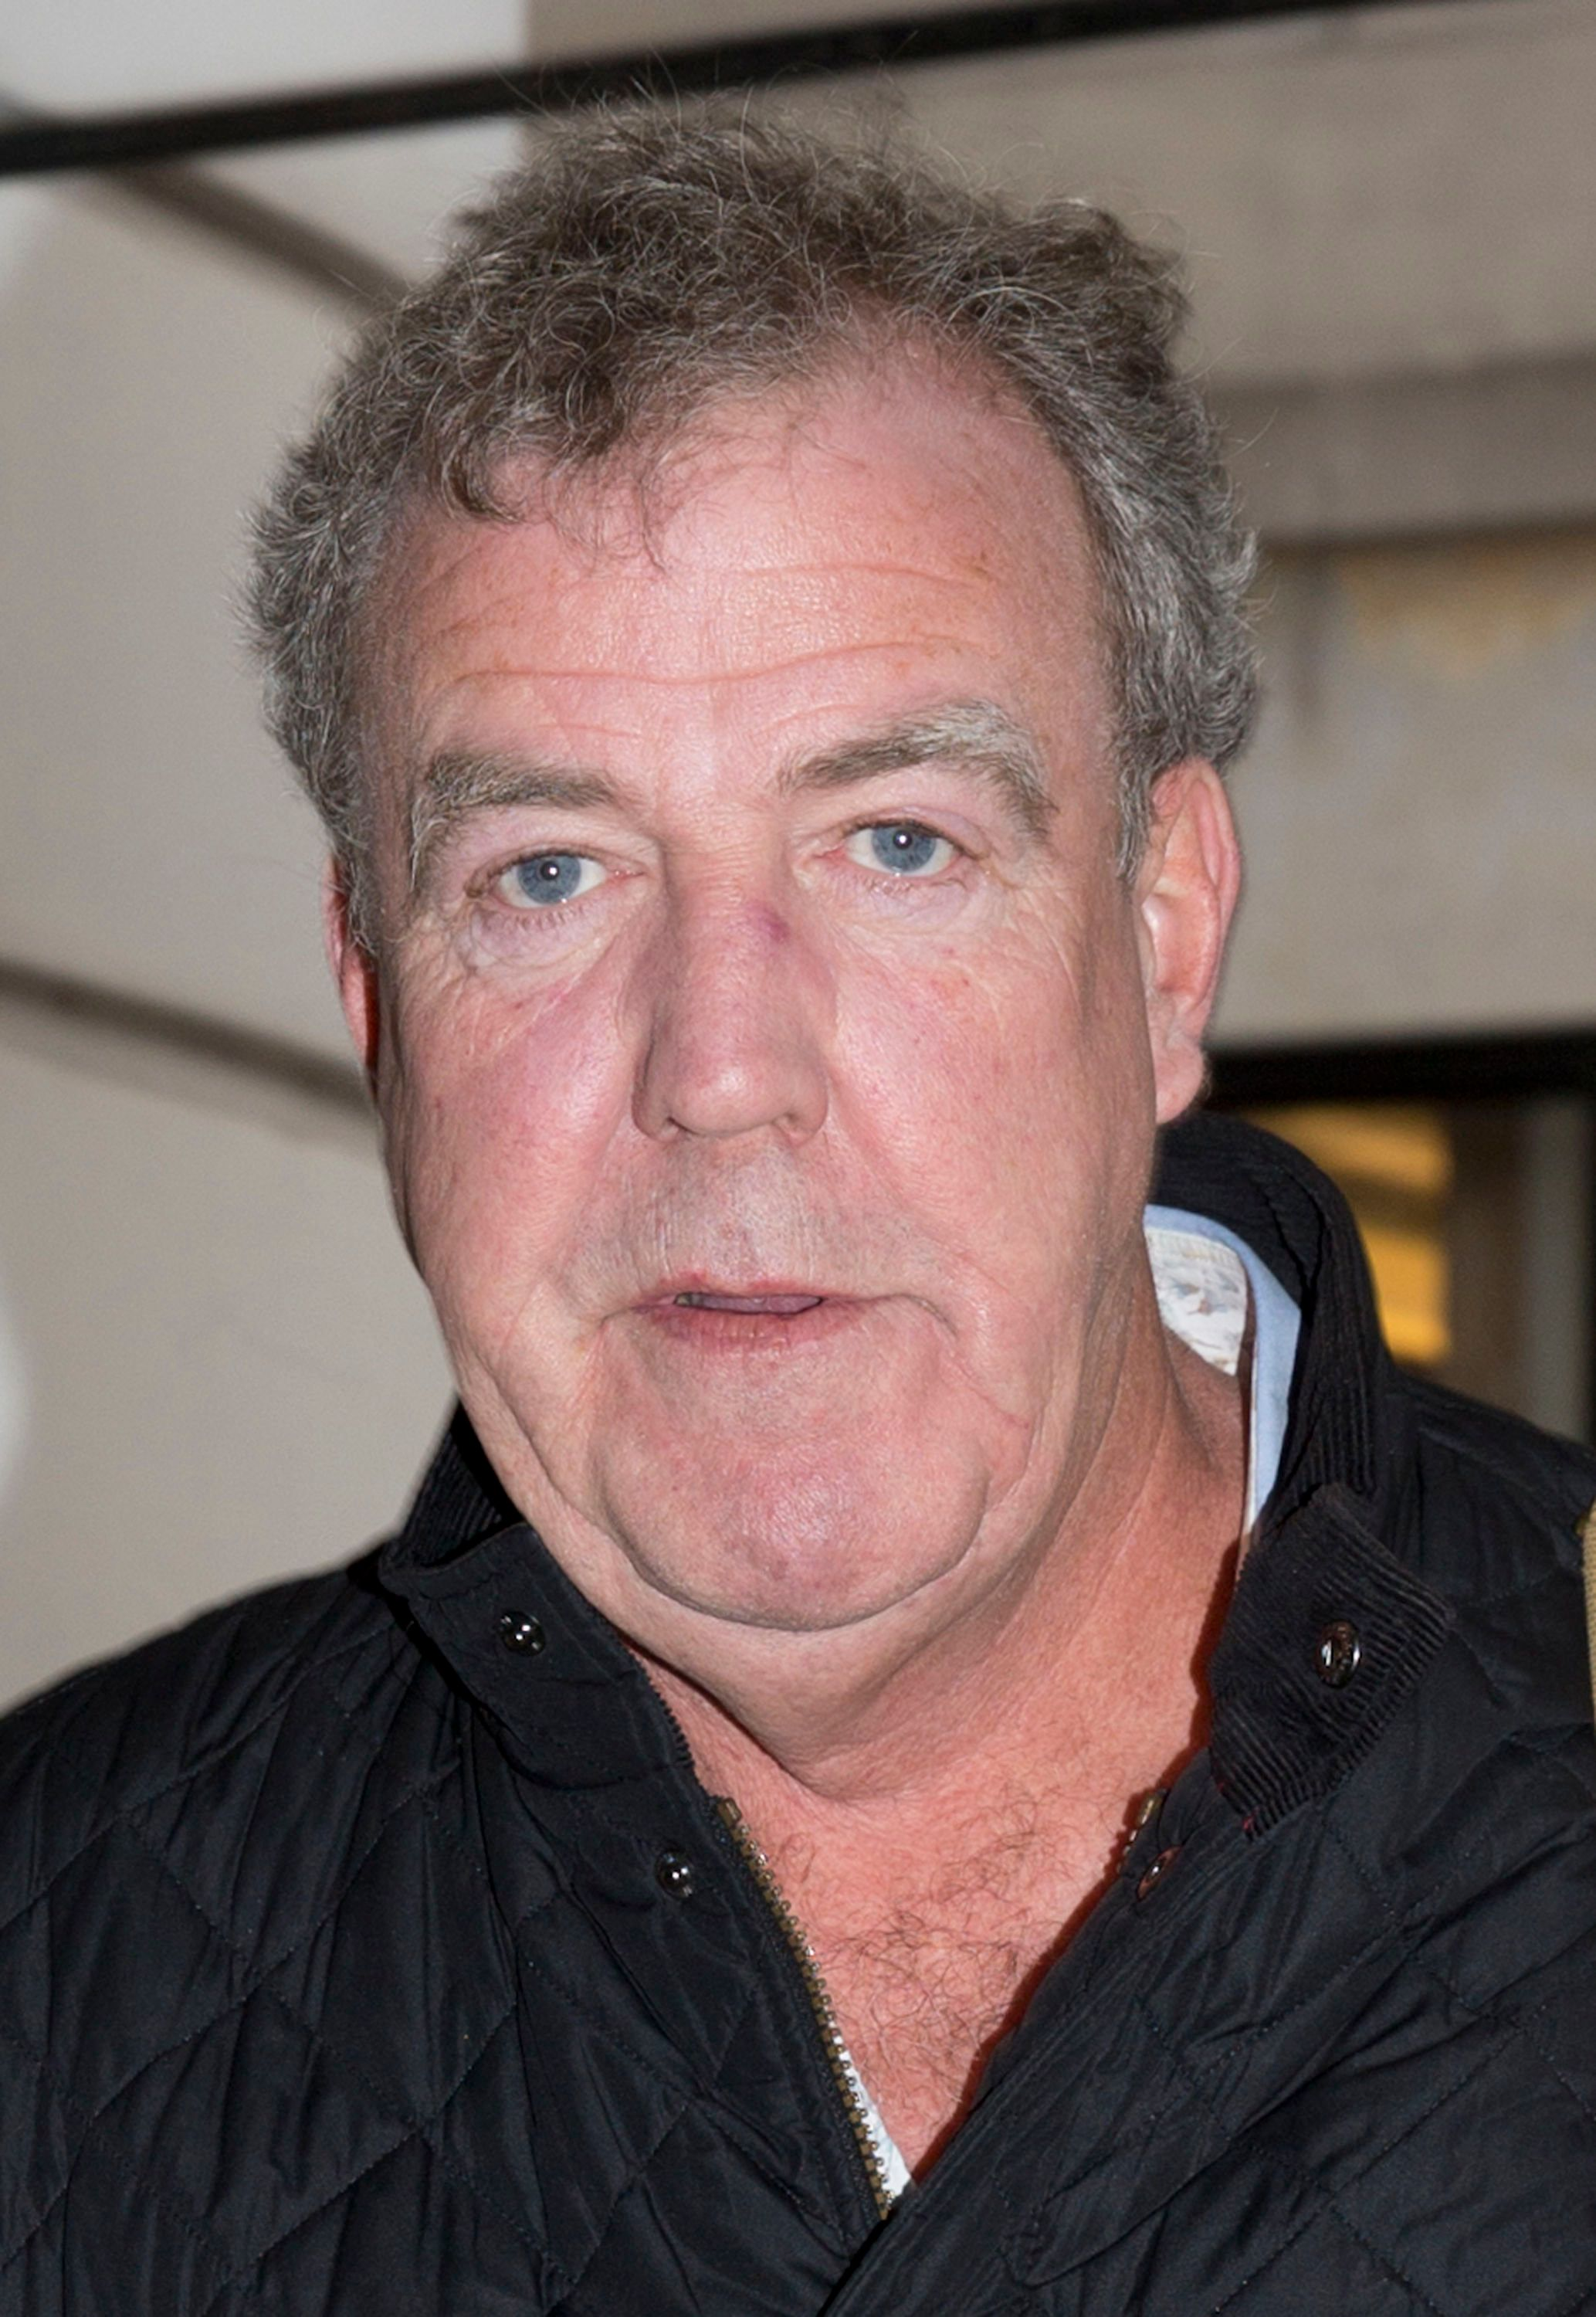 Former Top Gear Presenter Jeremy Clarkson Rushed To